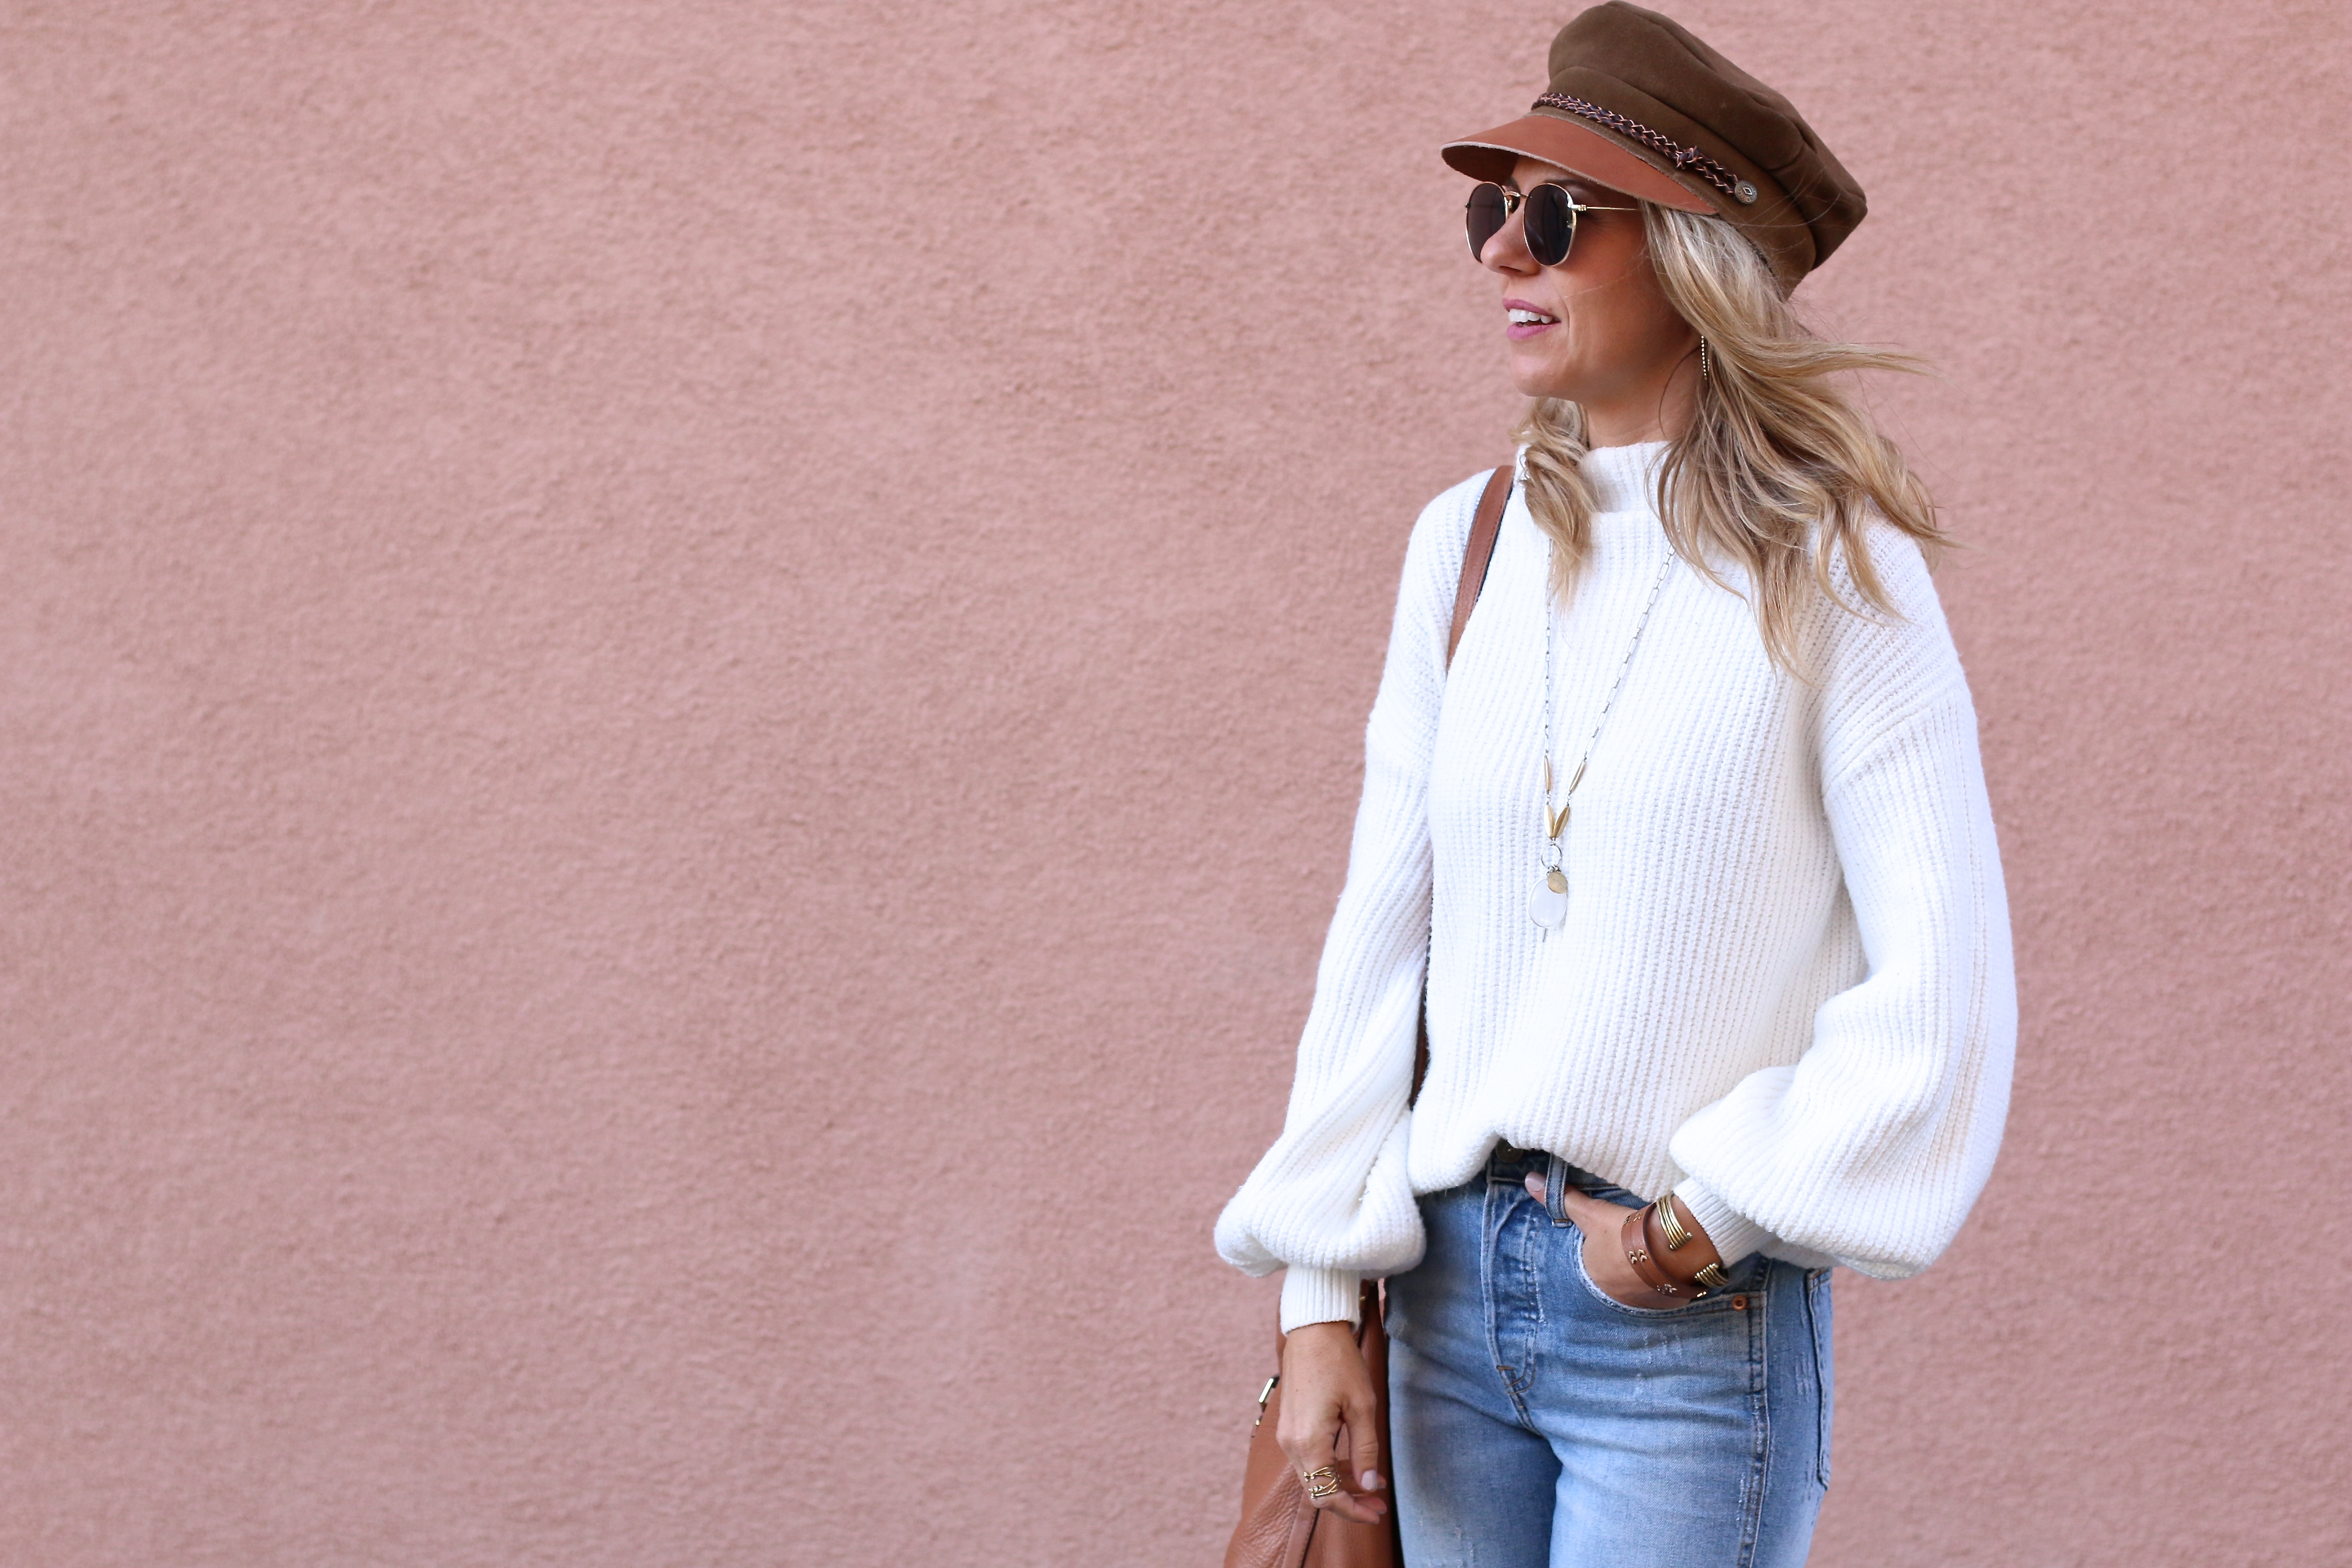 3 WAYS TO STYLE A WINTER WHITE SWEATER